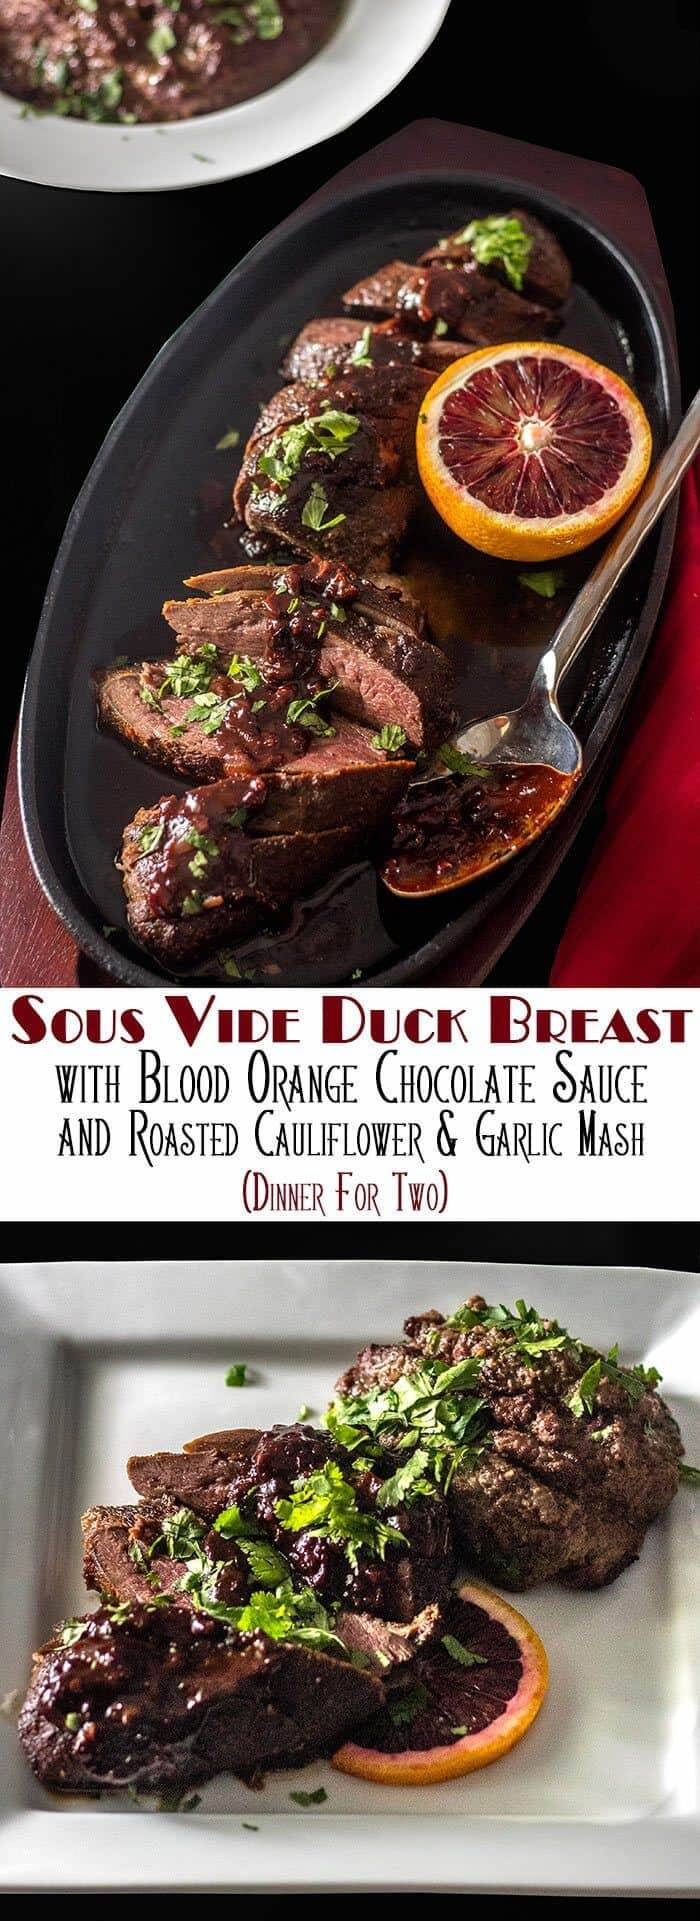 Tender, succulent duck breasts get a quick sear after their hot bath, and slathered in a gorgeous sauce. Sous Vide Duck Breasts with Blood Orange Chocolate Sauce, served with a Roasted Cauliflower and Garlic Mash is sure to